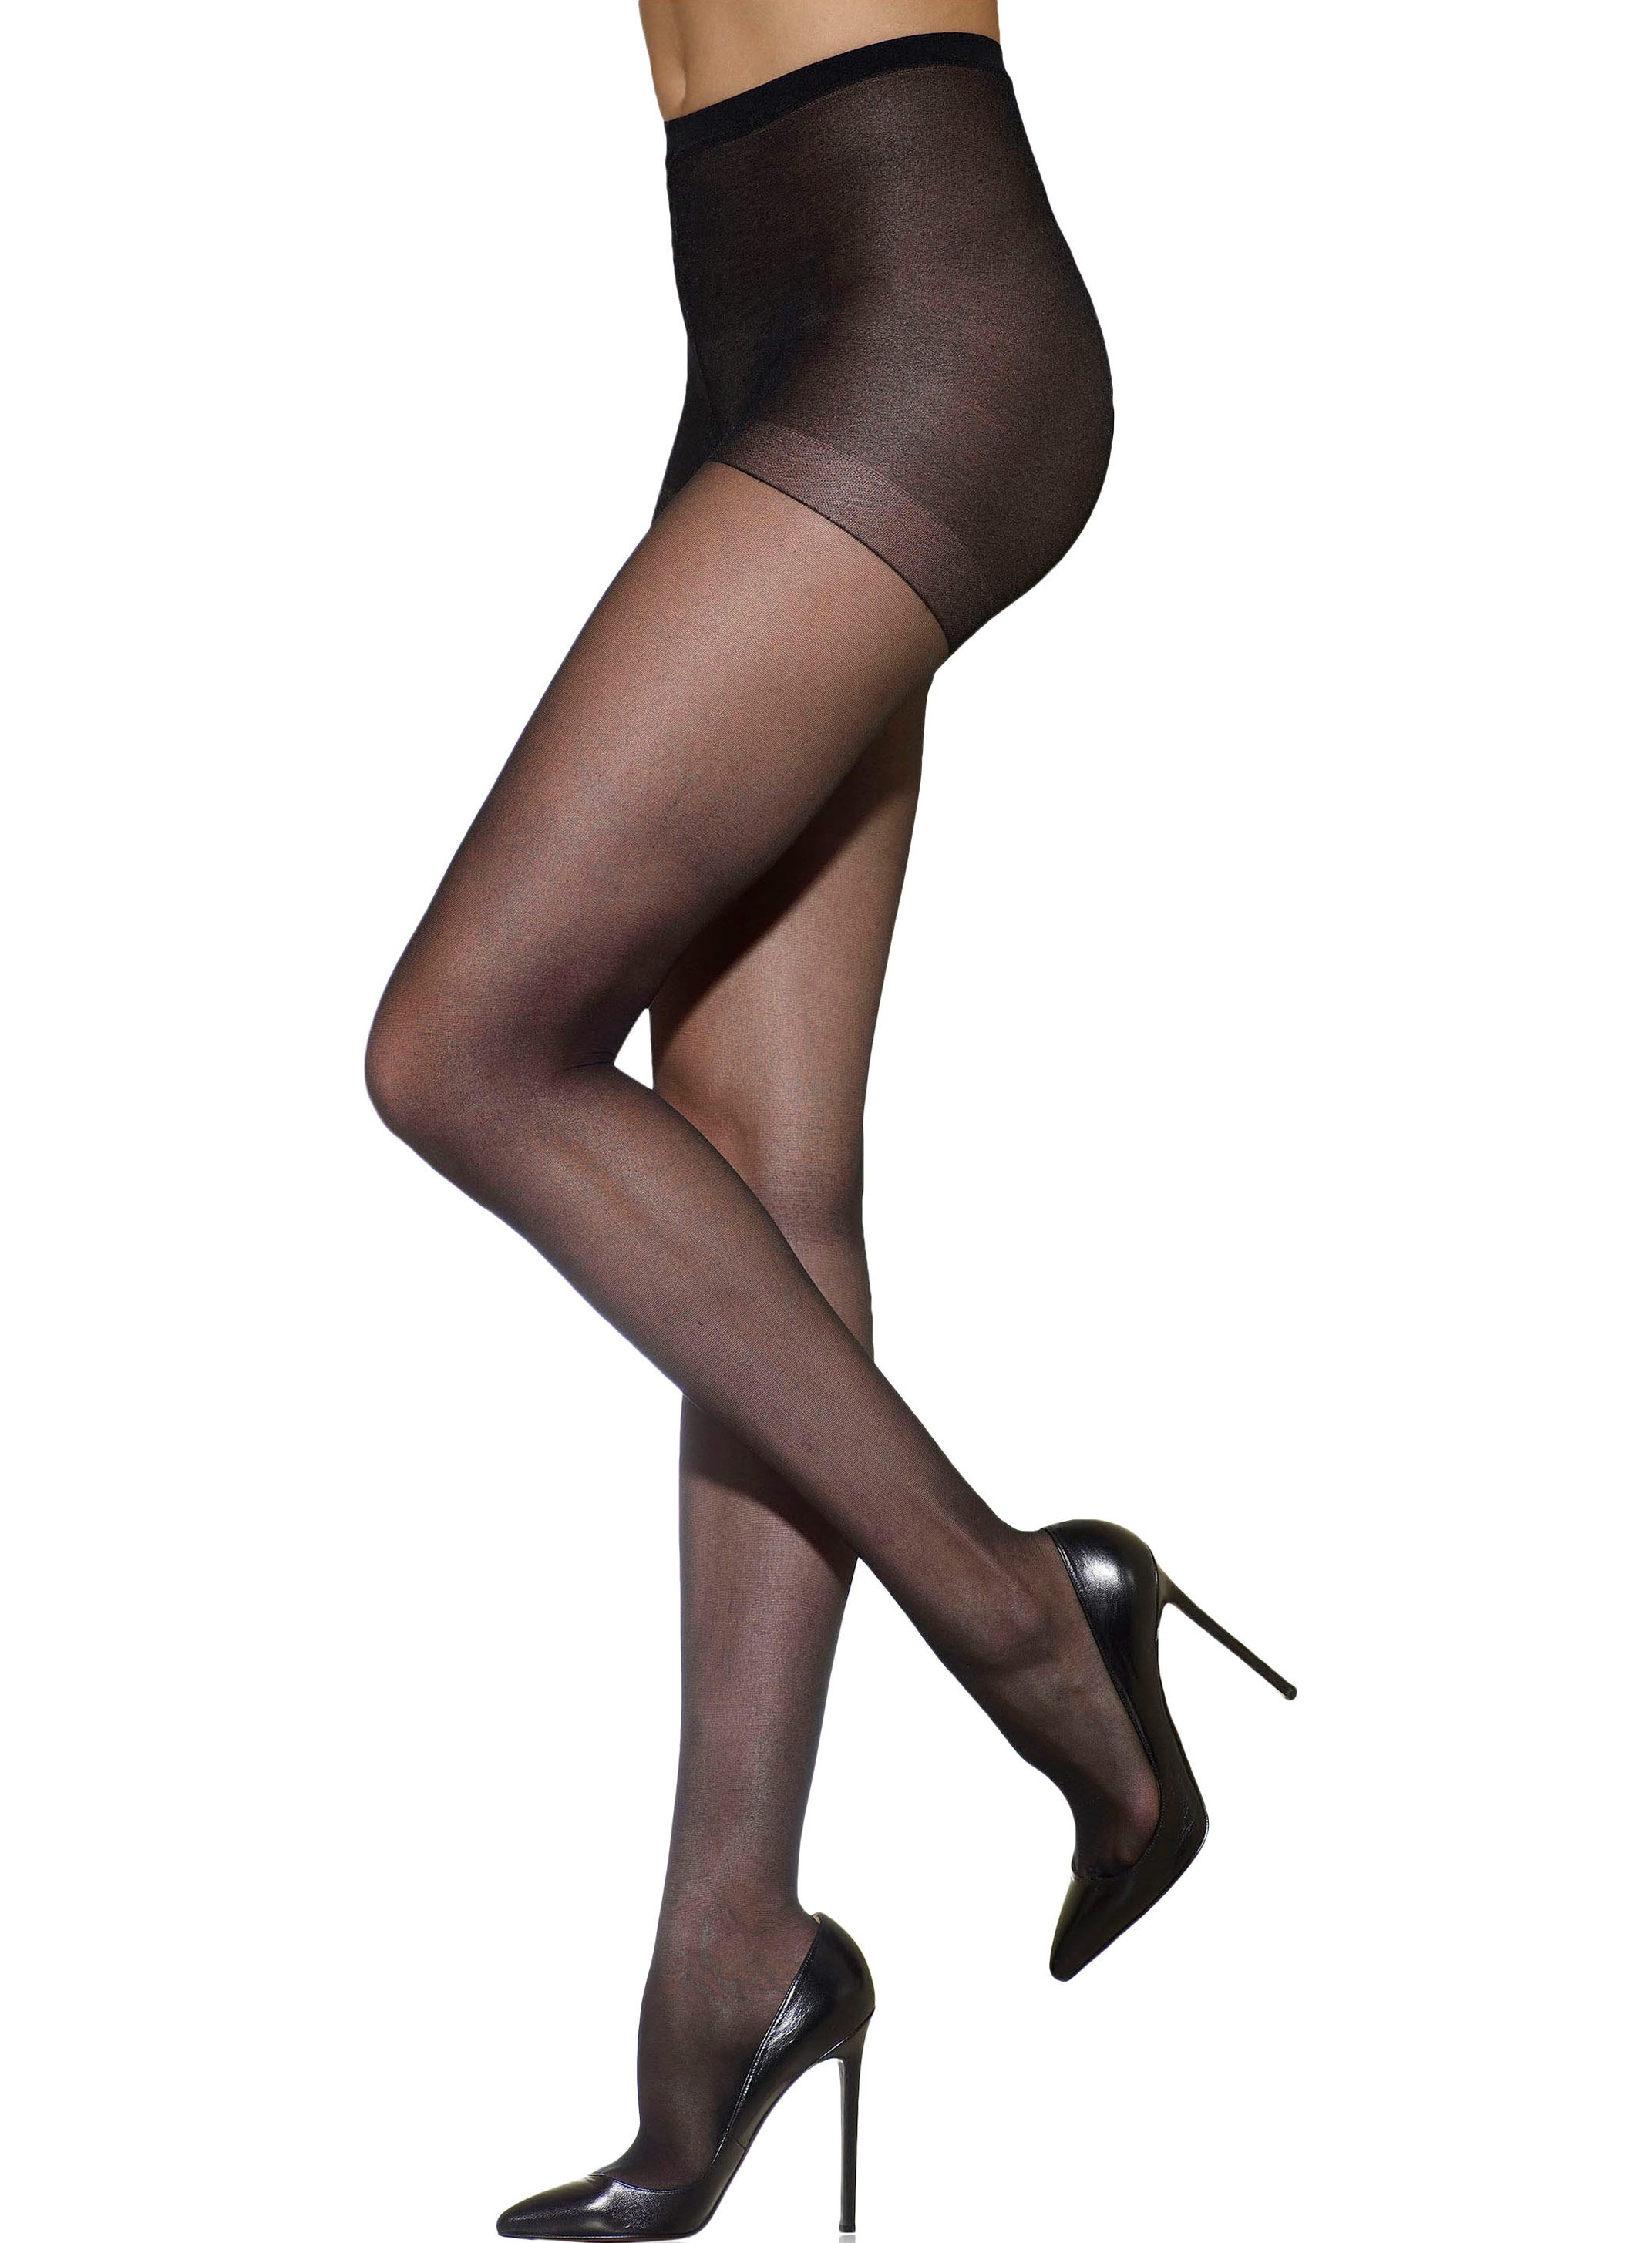 Sheer pantyhose comfortable